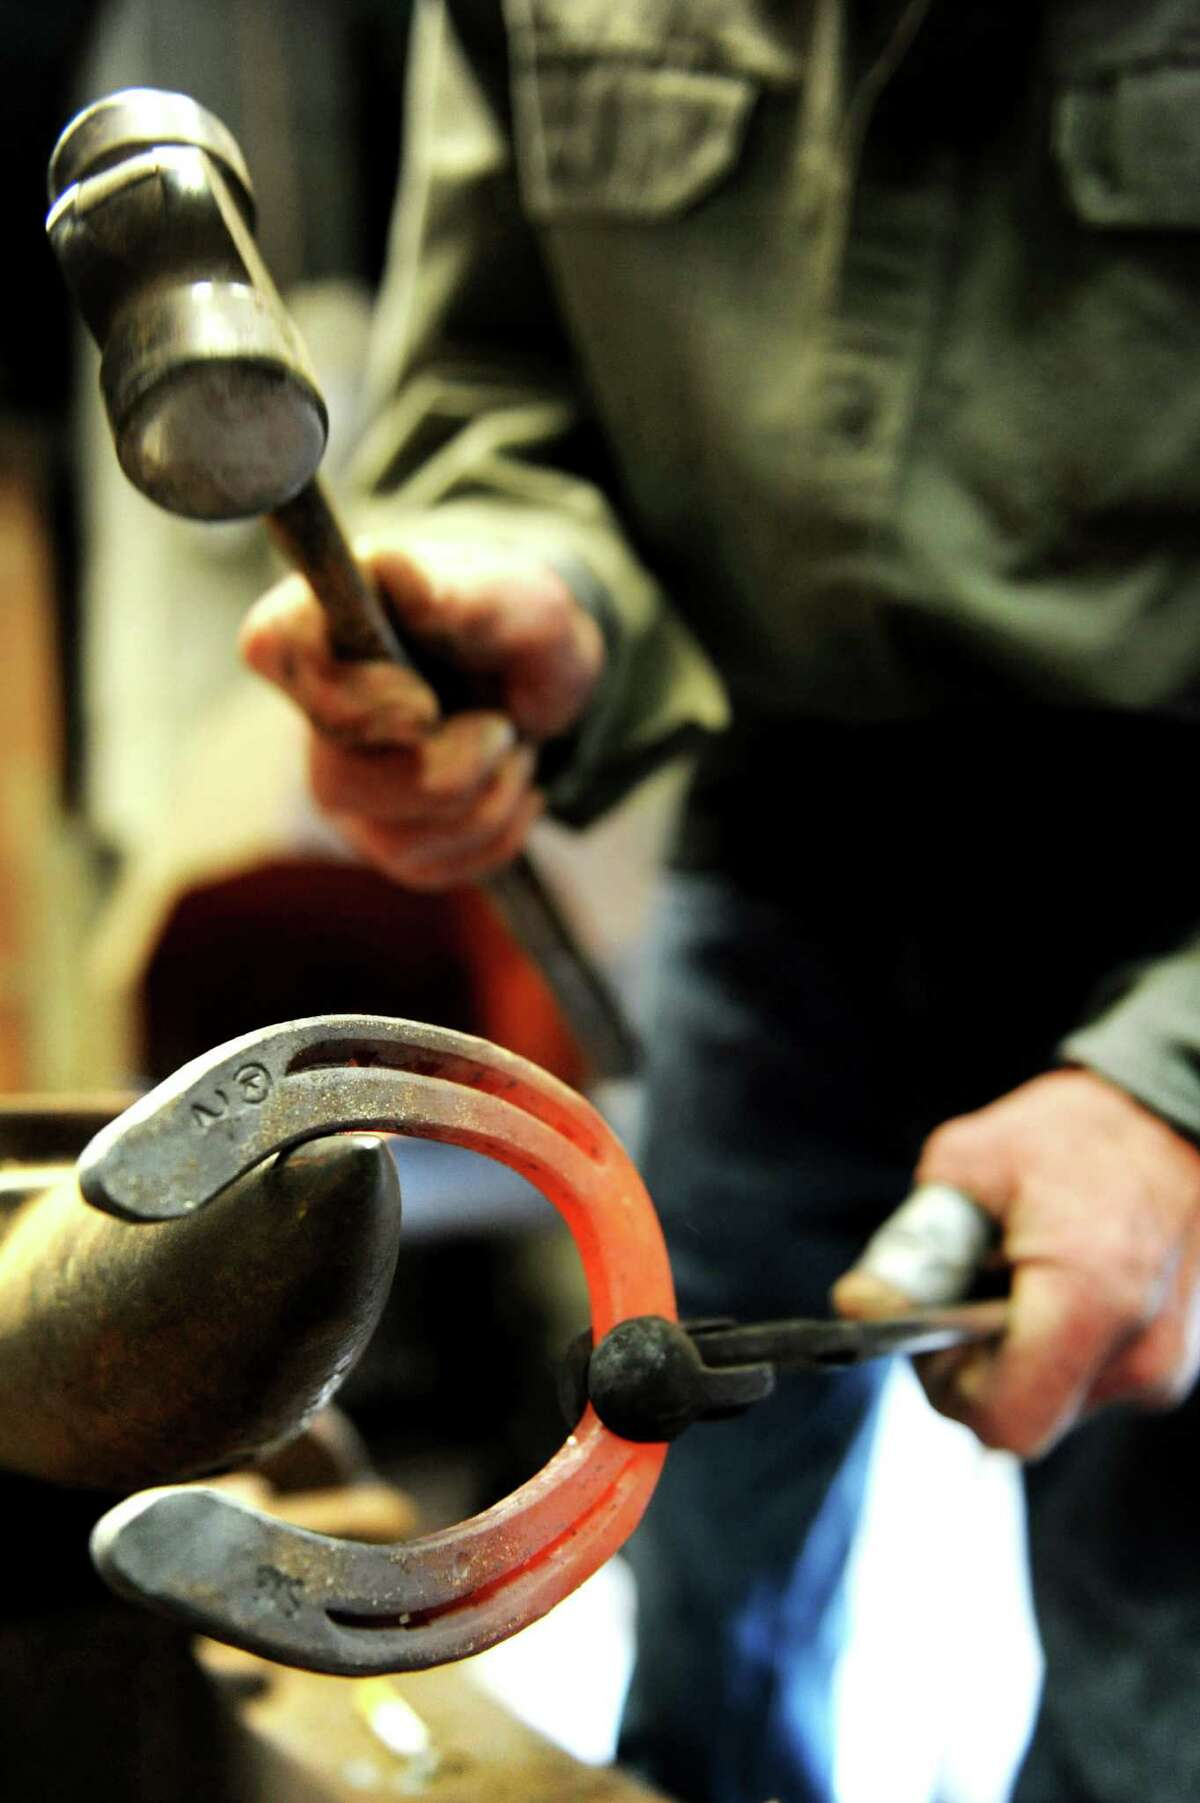 Farrier Jim Santore hammers a hot horseshoe on Tuesday, April 9, 2013, at Van Lennep Riding Center in Greenfield, N.Y. (Cindy Schultz / Times Union)